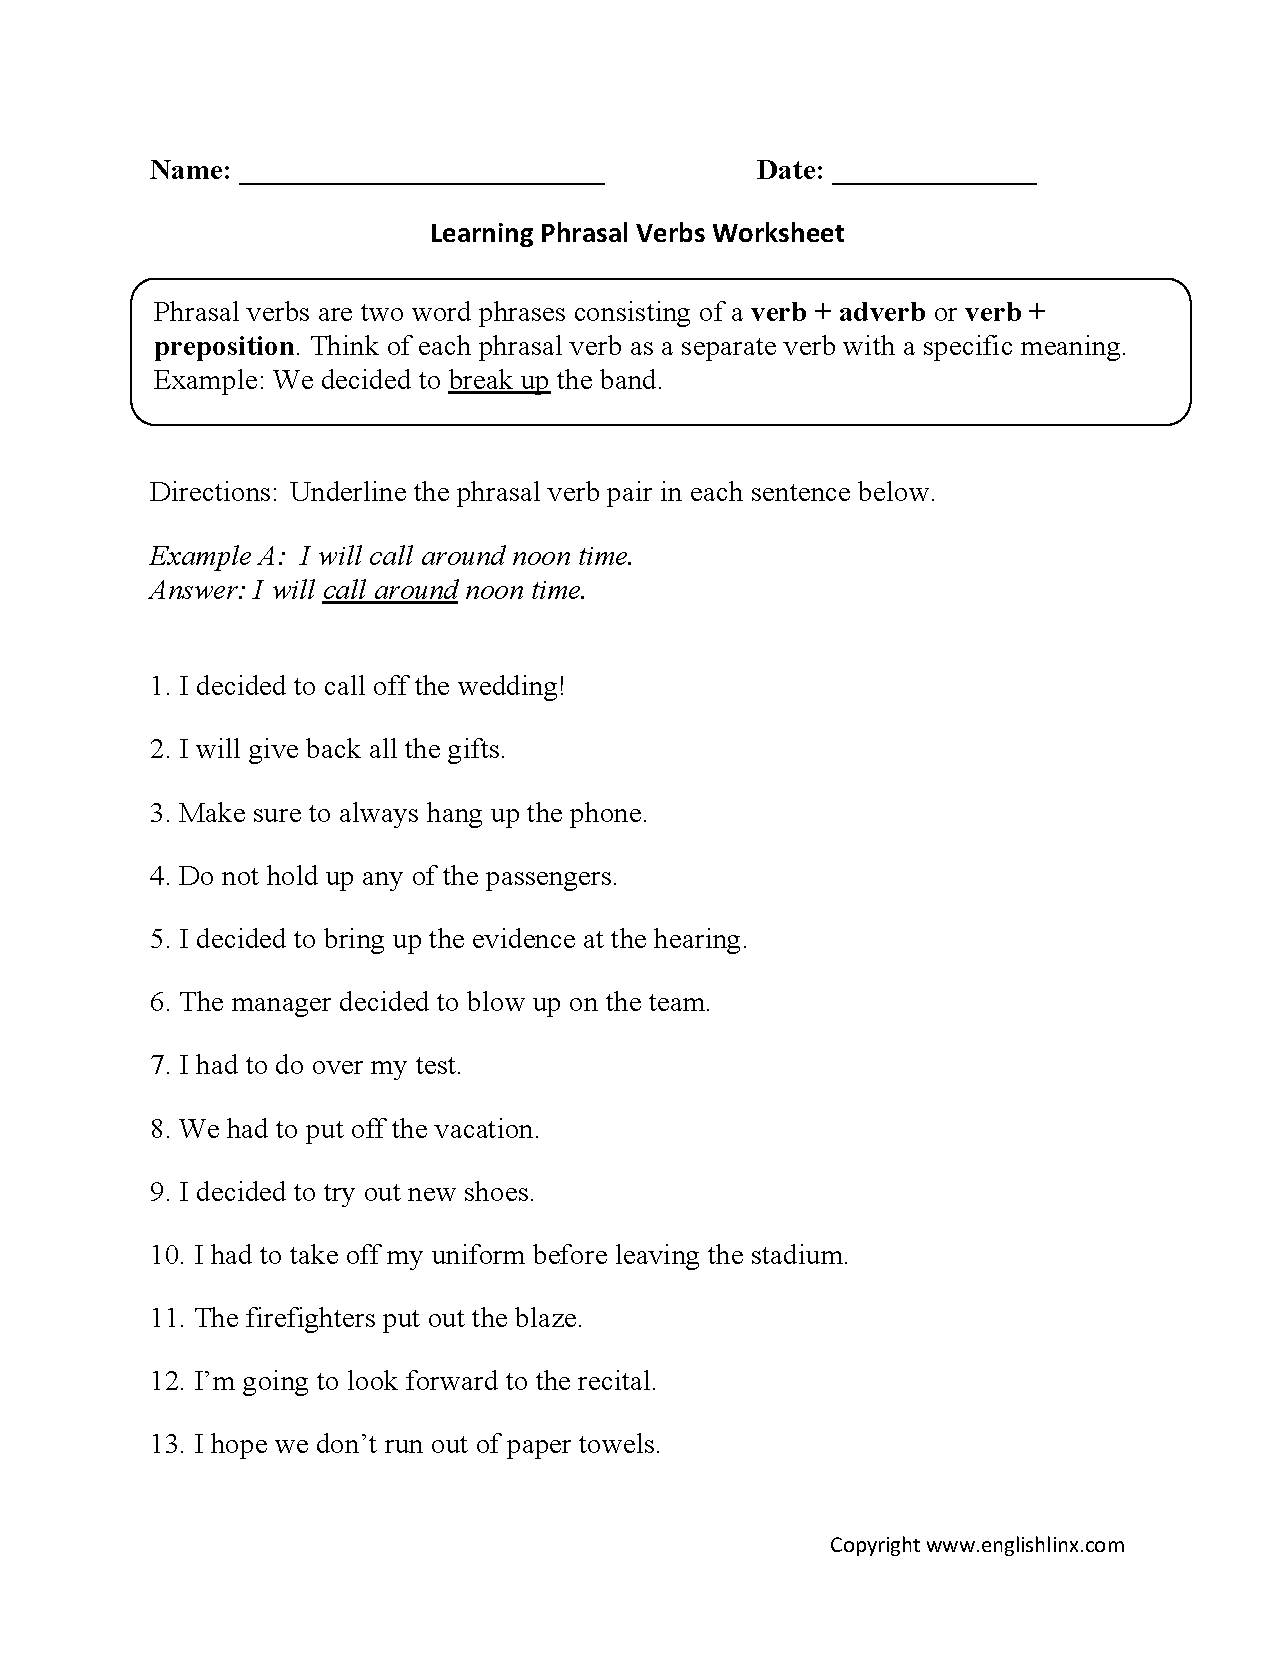 Worksheets Verbs Work Sheets englishlinx com verbs worksheets phrasal worksheets